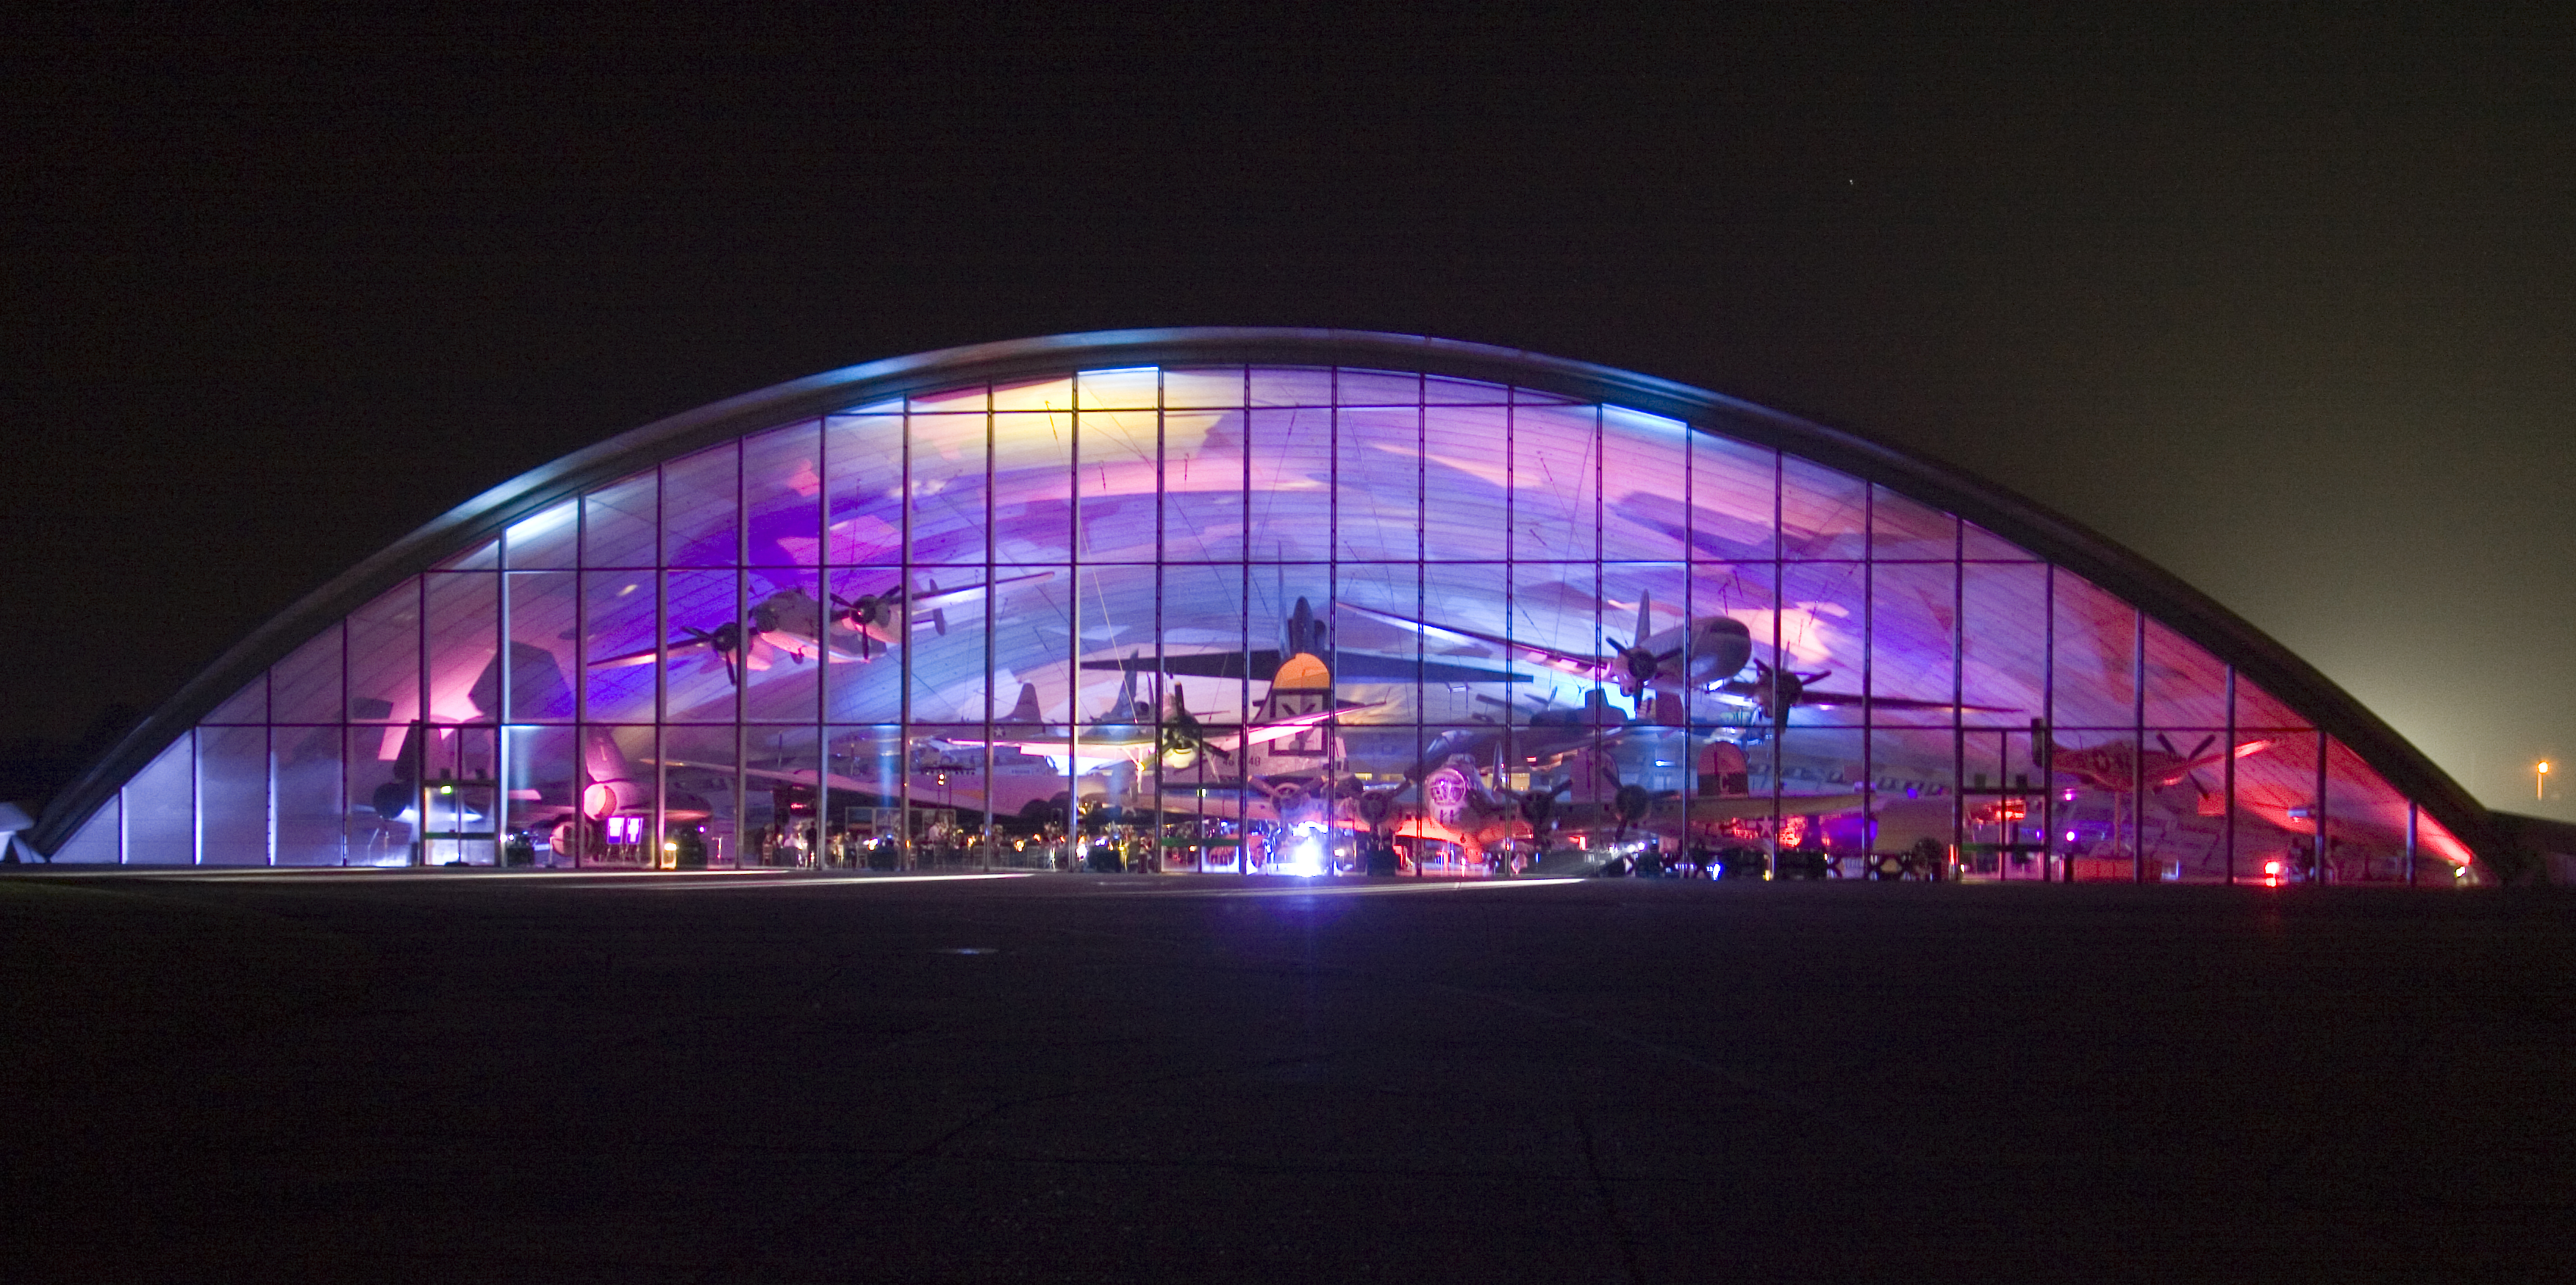 Exterior of Imperial War Museums Duxford hangar, lit in purple at night for an event